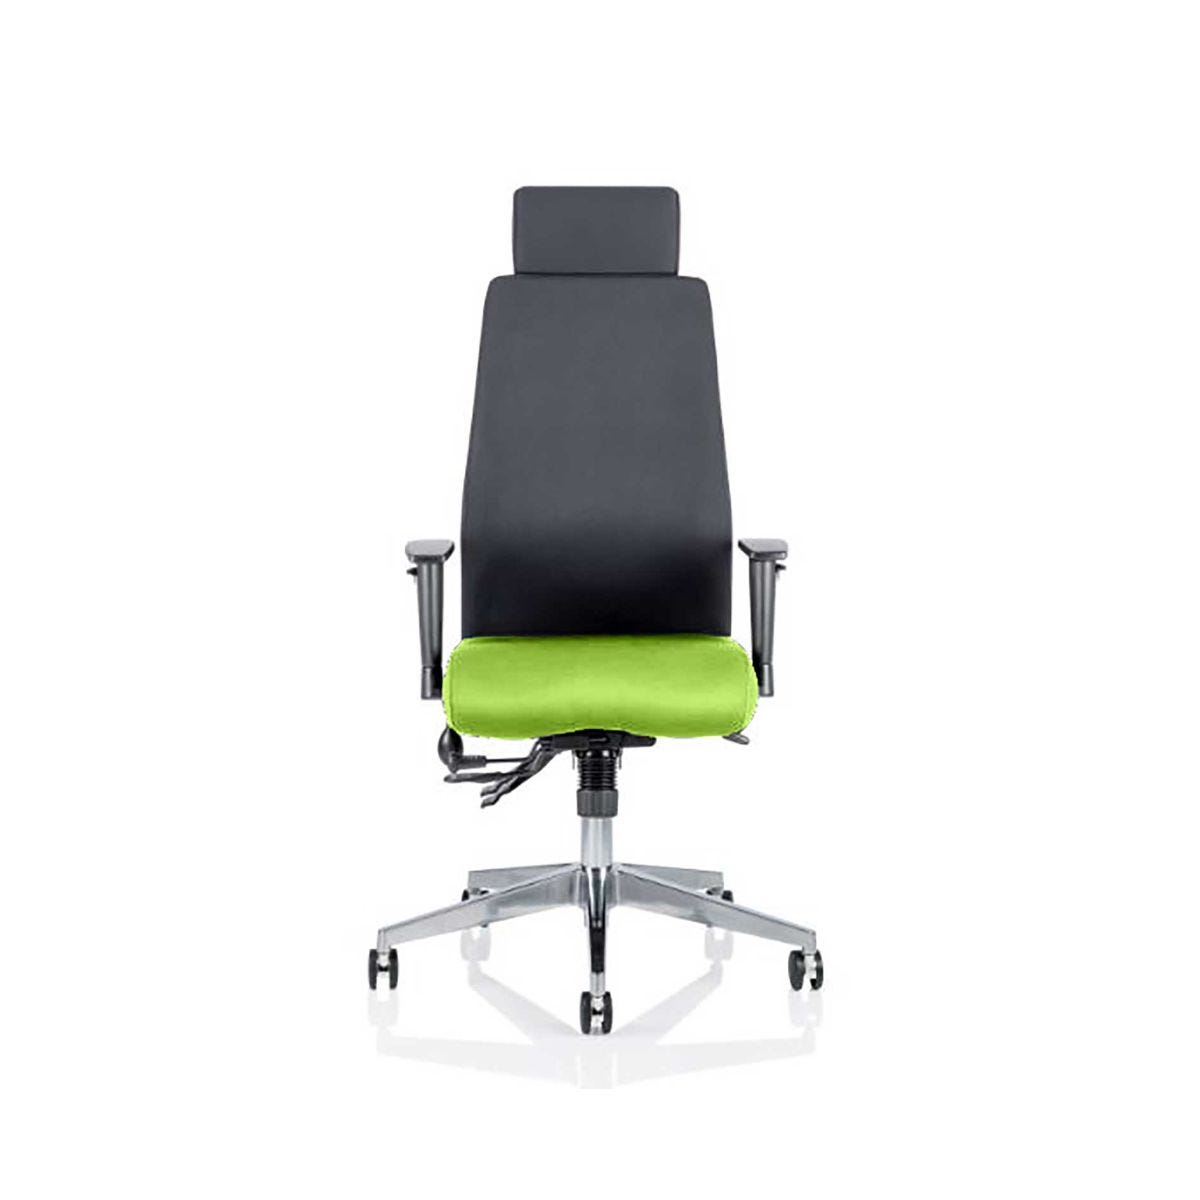 Onyx Office Chair With Headrest, Myrhh